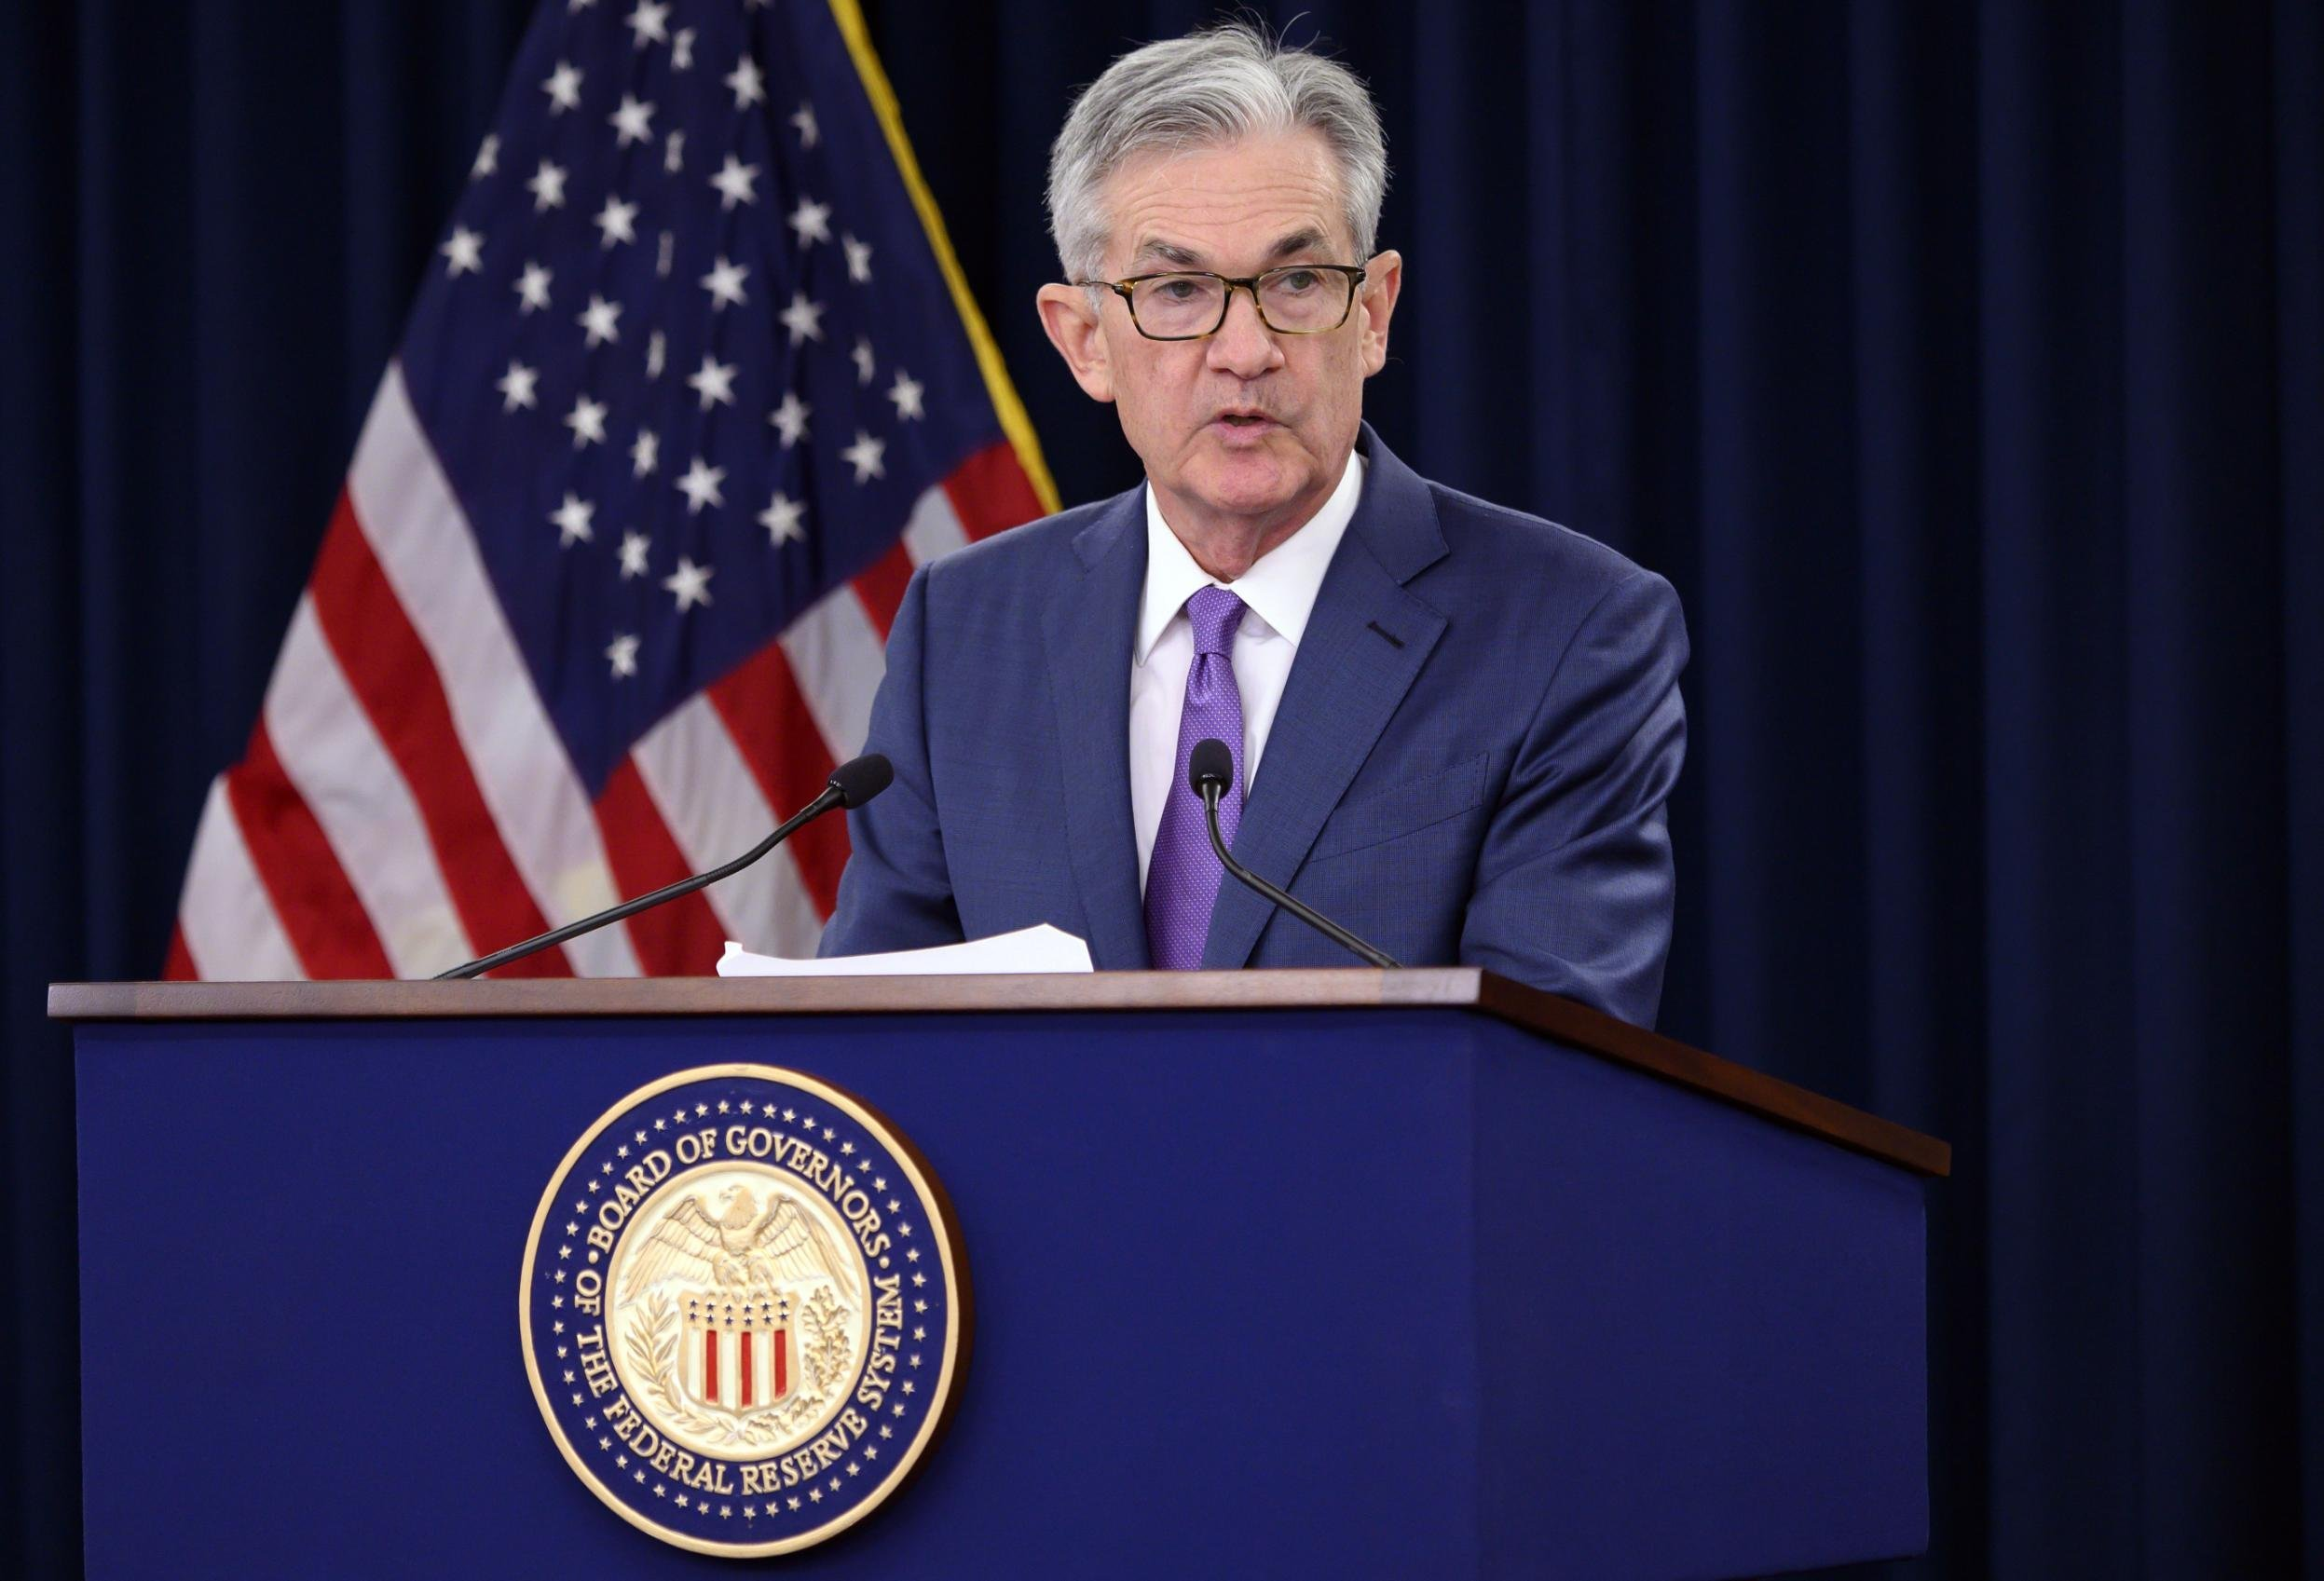 Jerome Powell faces his biggest test yet in high-profile speech